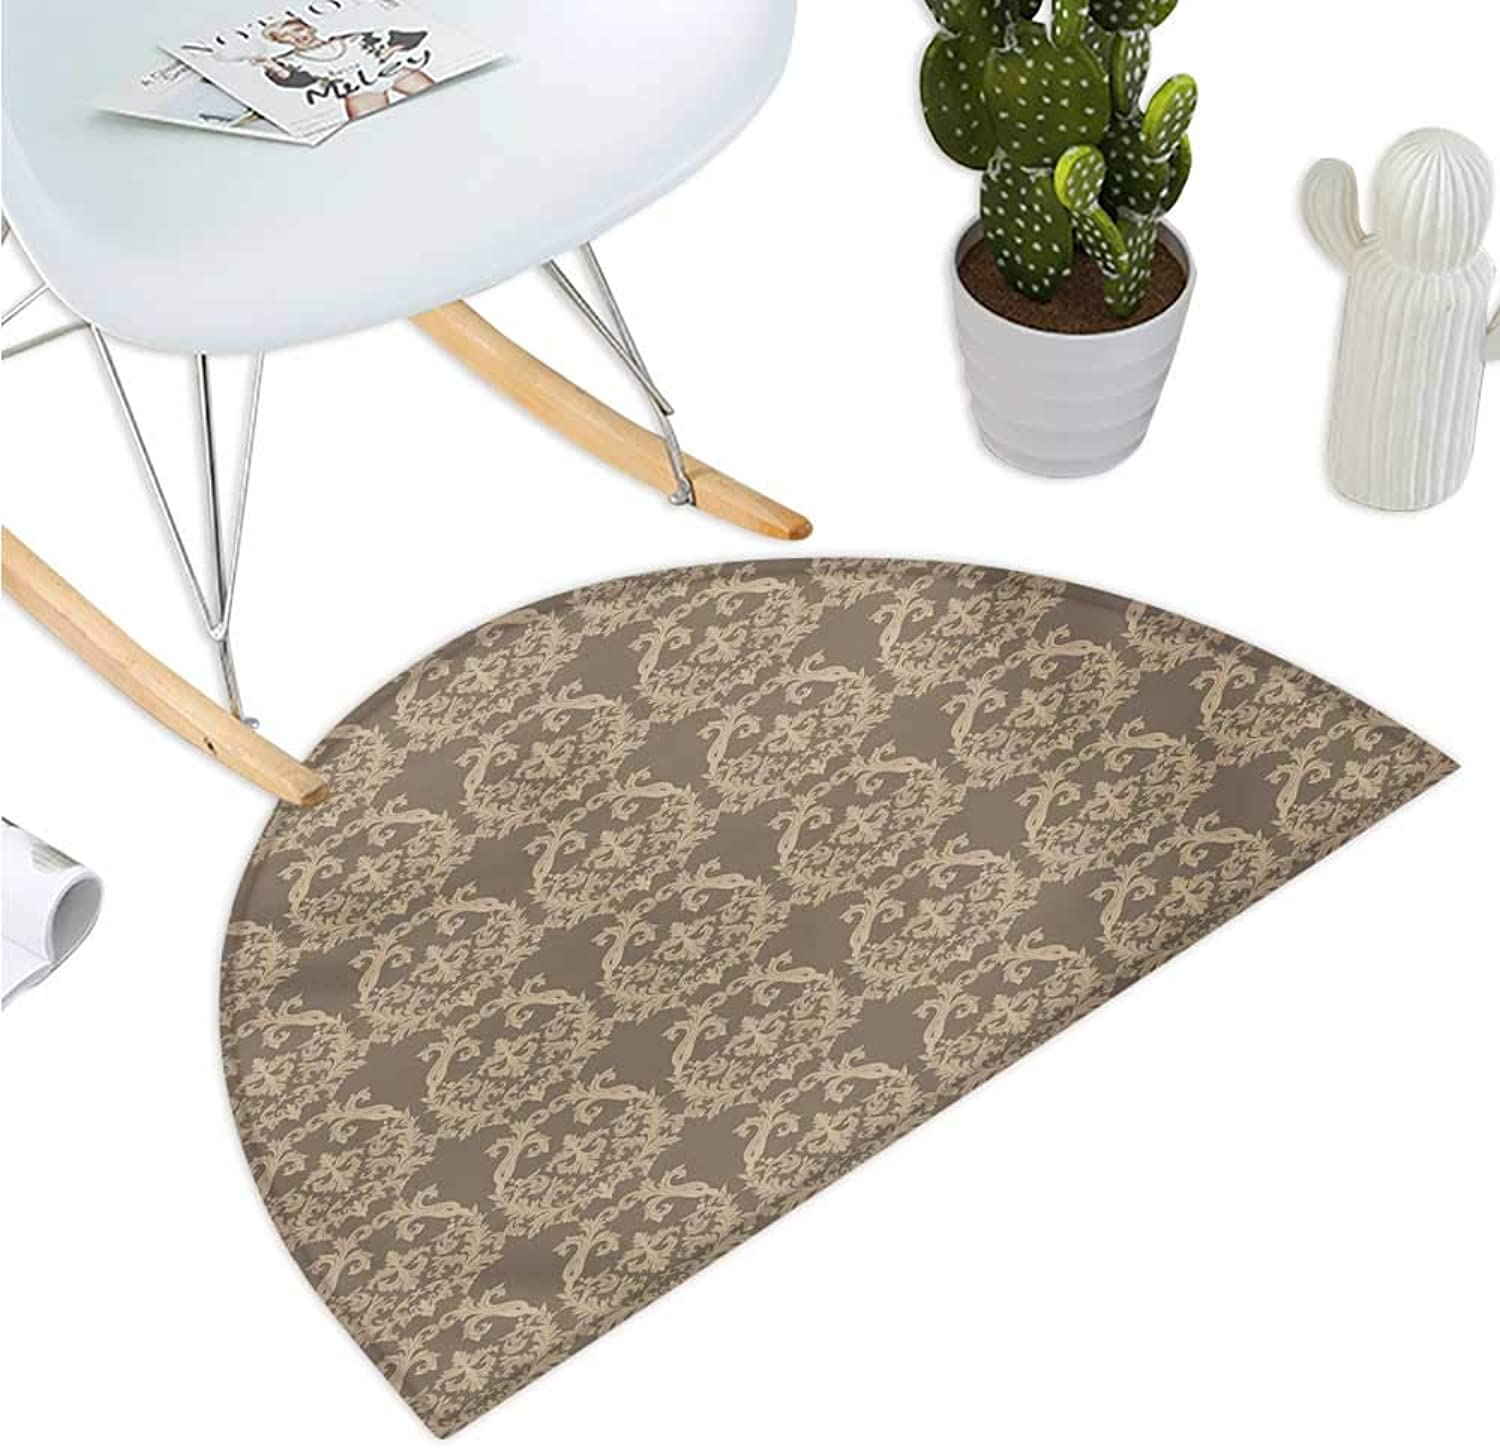 Taupe Semicircular Cushion Royal Victorian Botanical Design Exquisite Floral Figures Historic Pattern Halfmoon doormats H 43.3  xD 64.9  Warm Taupe Sand Brown